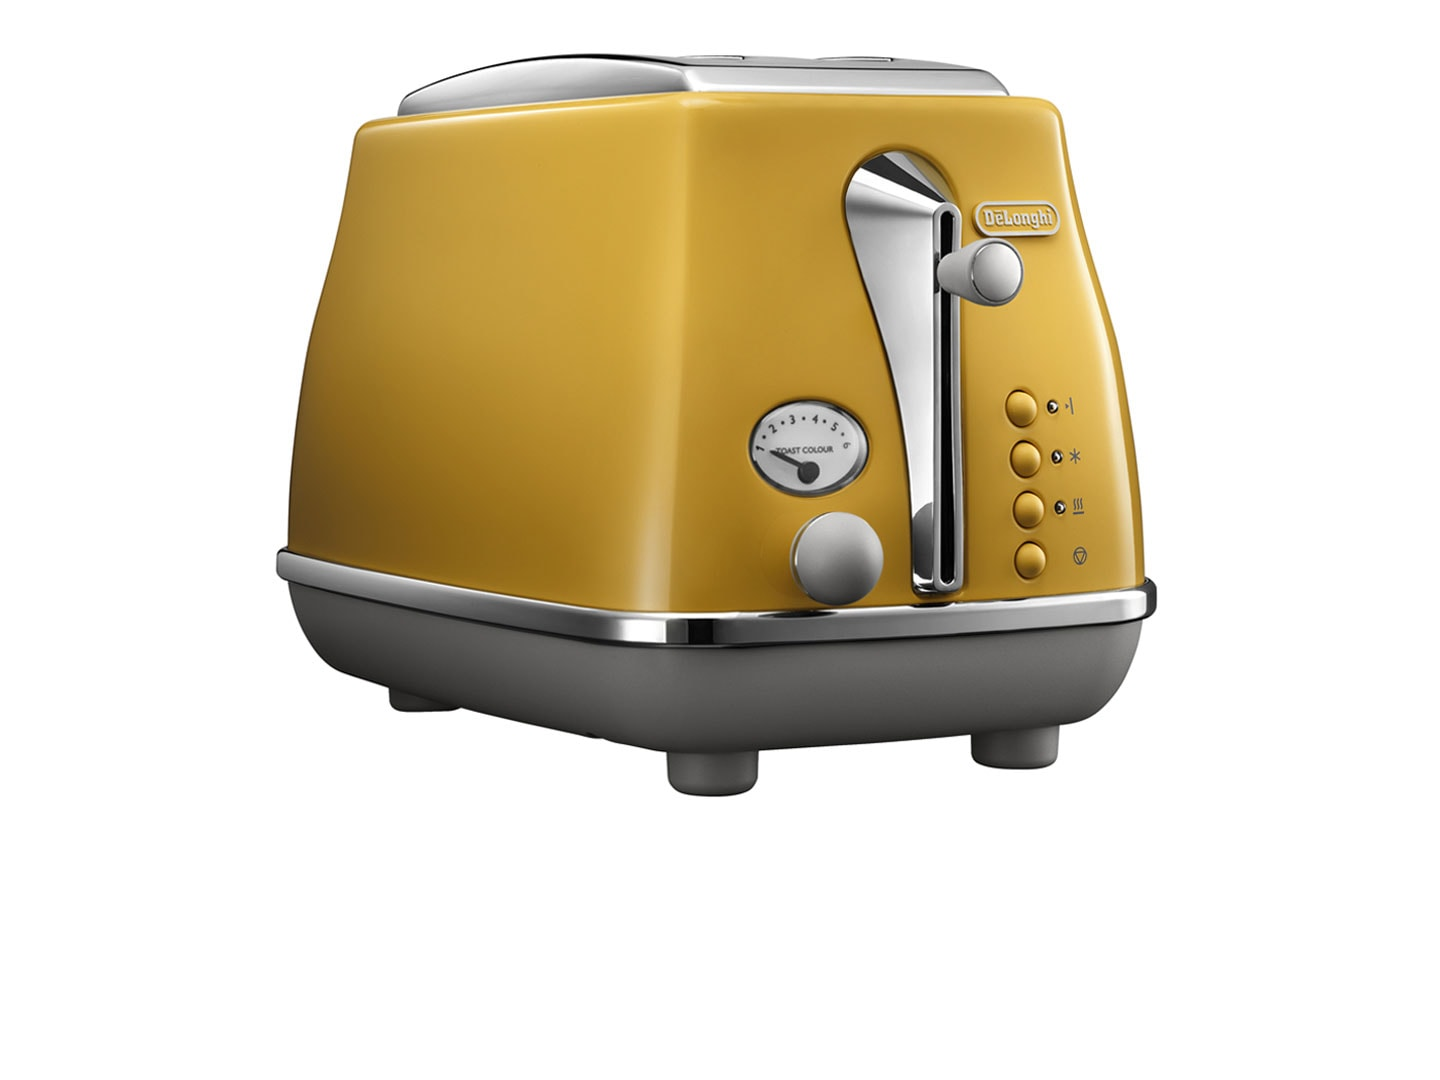 DeLonghi Icona Capitals 2 Slice Toaster - New York Yellow CTOC 2003.Y